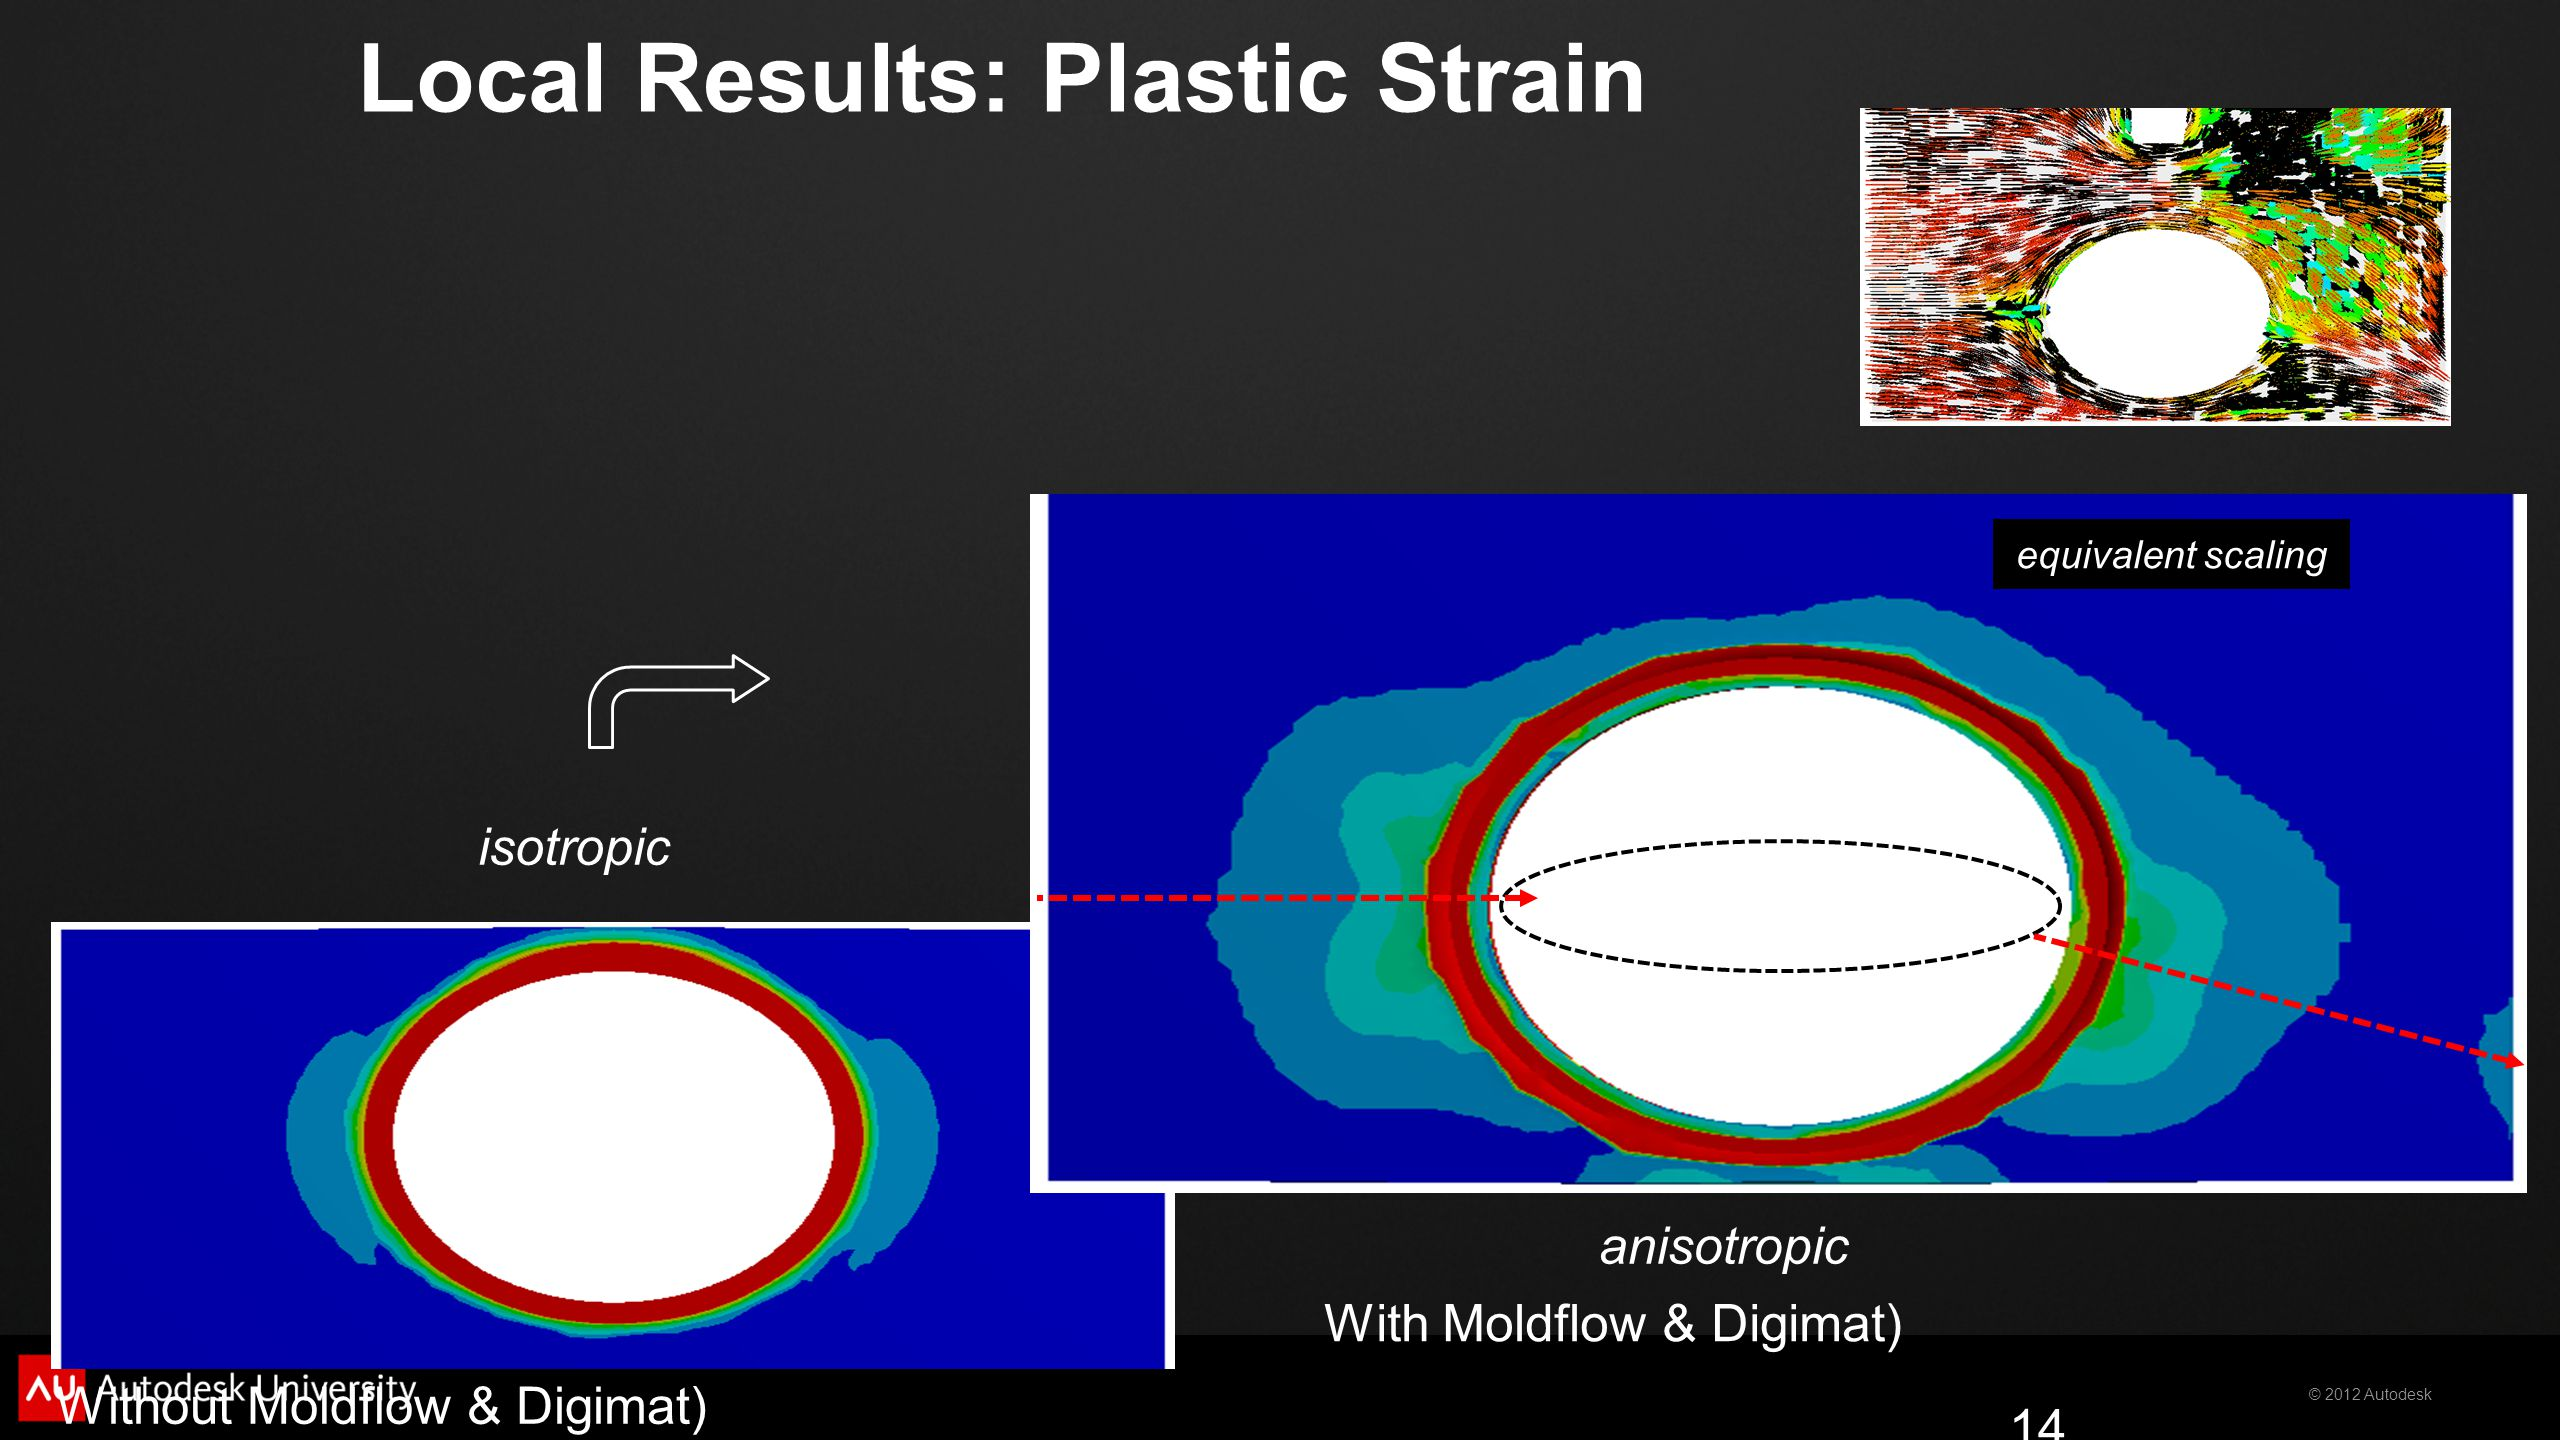 Local Results: Plastic Strain